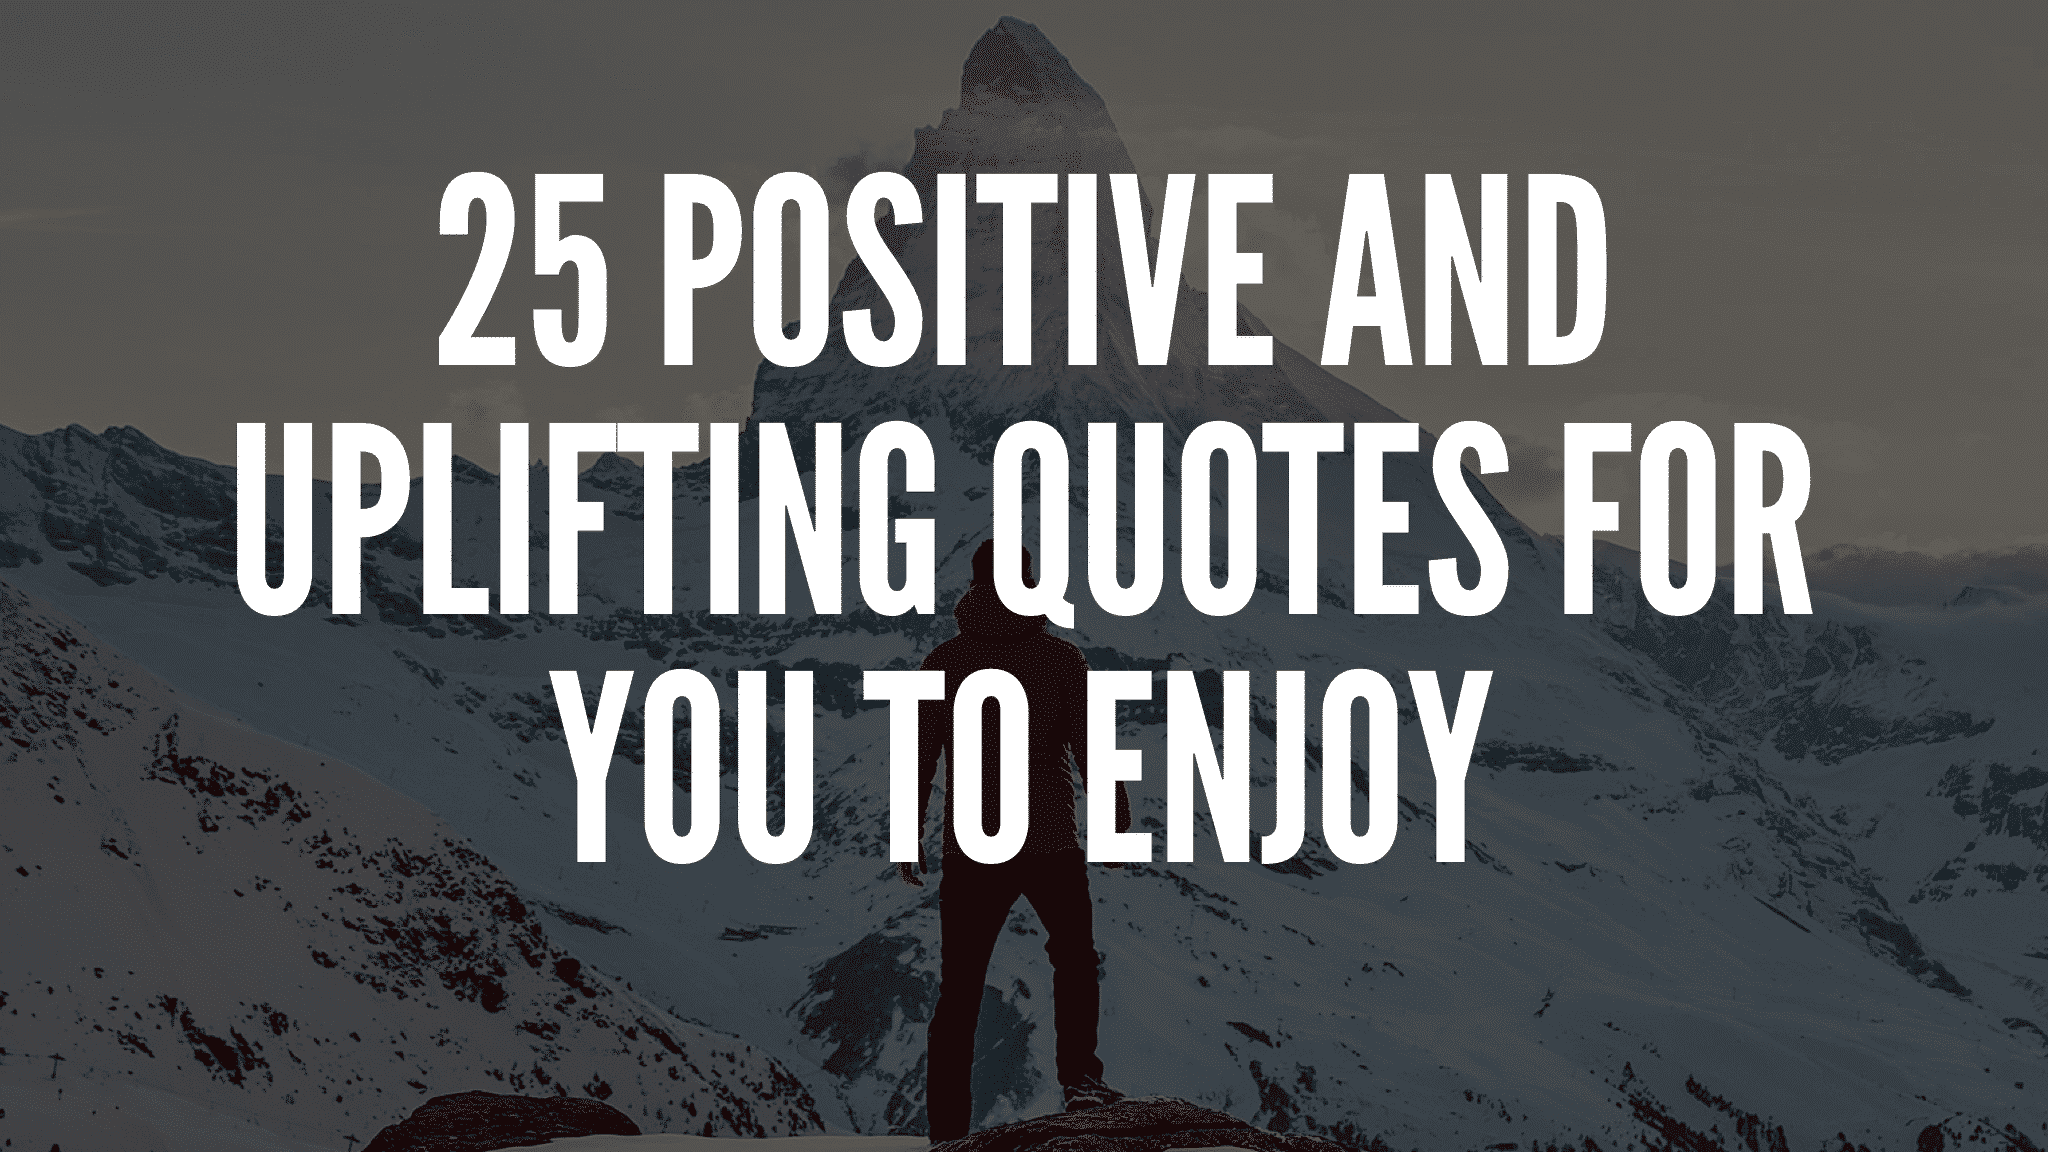 25 Positive And Uplifting Quotes For You To Enjoy